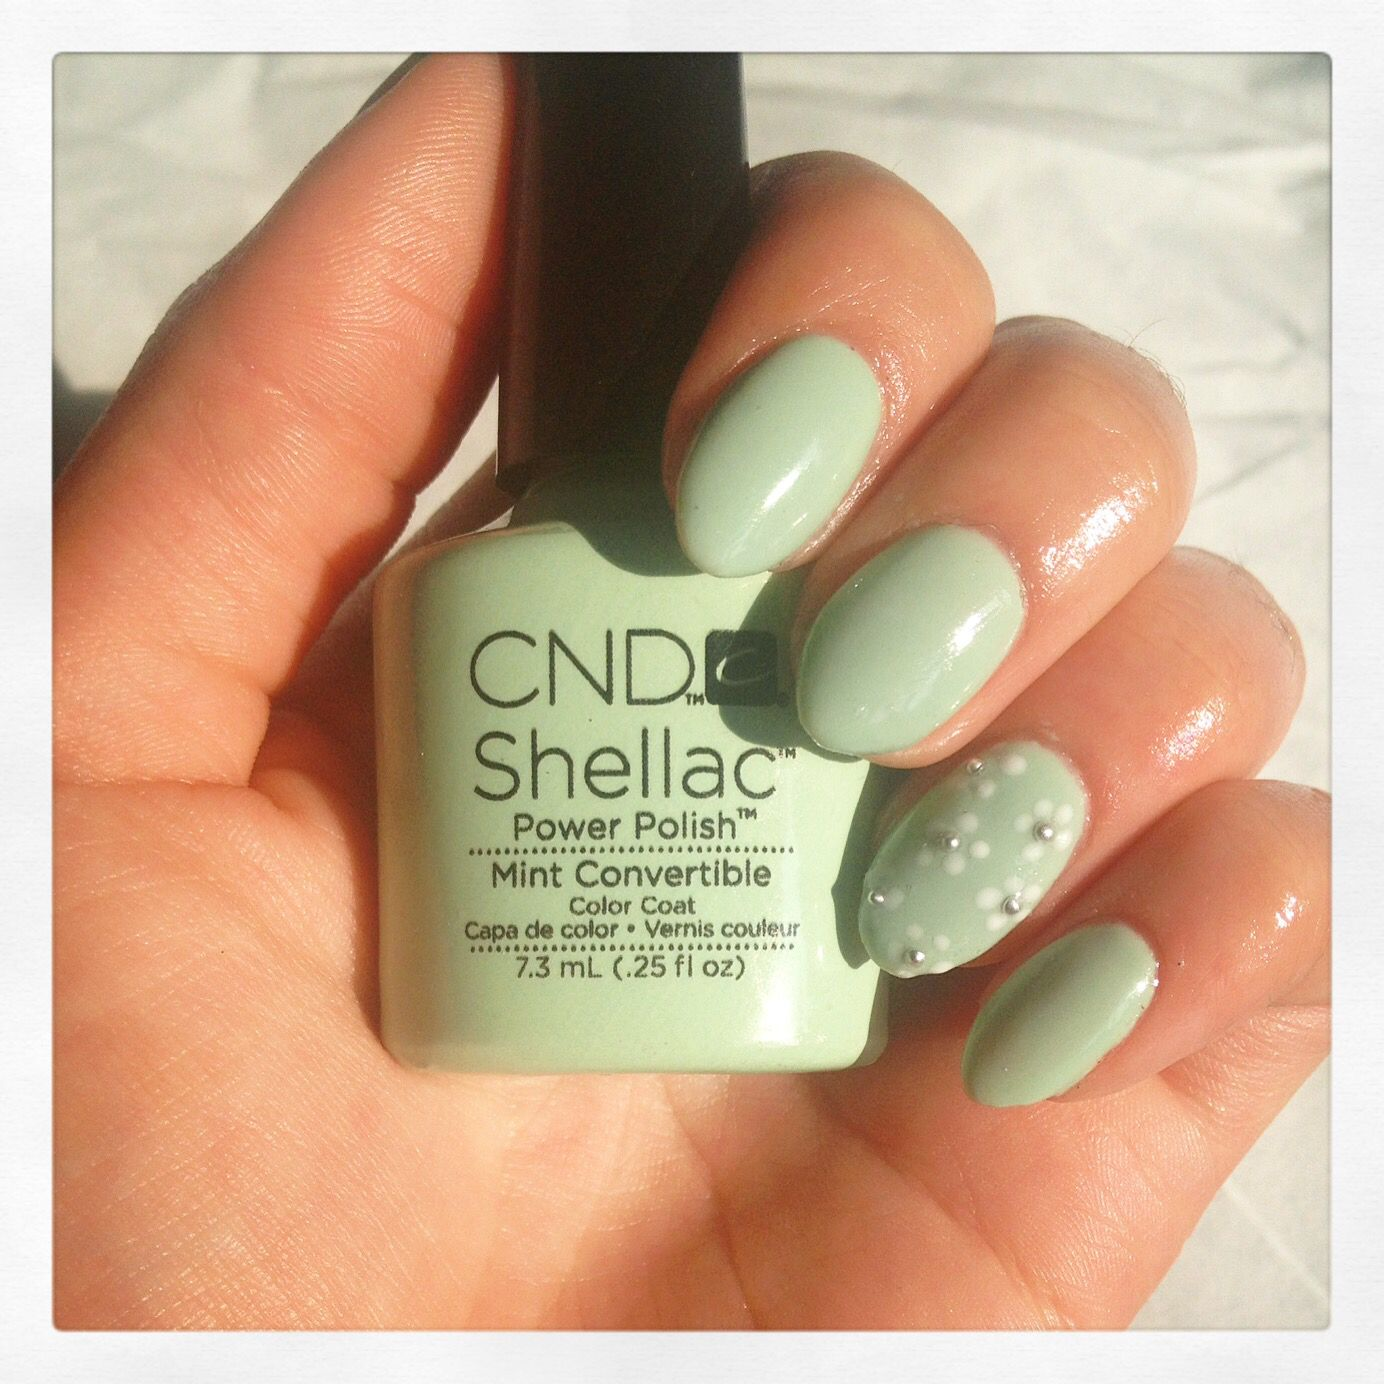 Almond nails in mint convertible by shellac with floral nail art ...